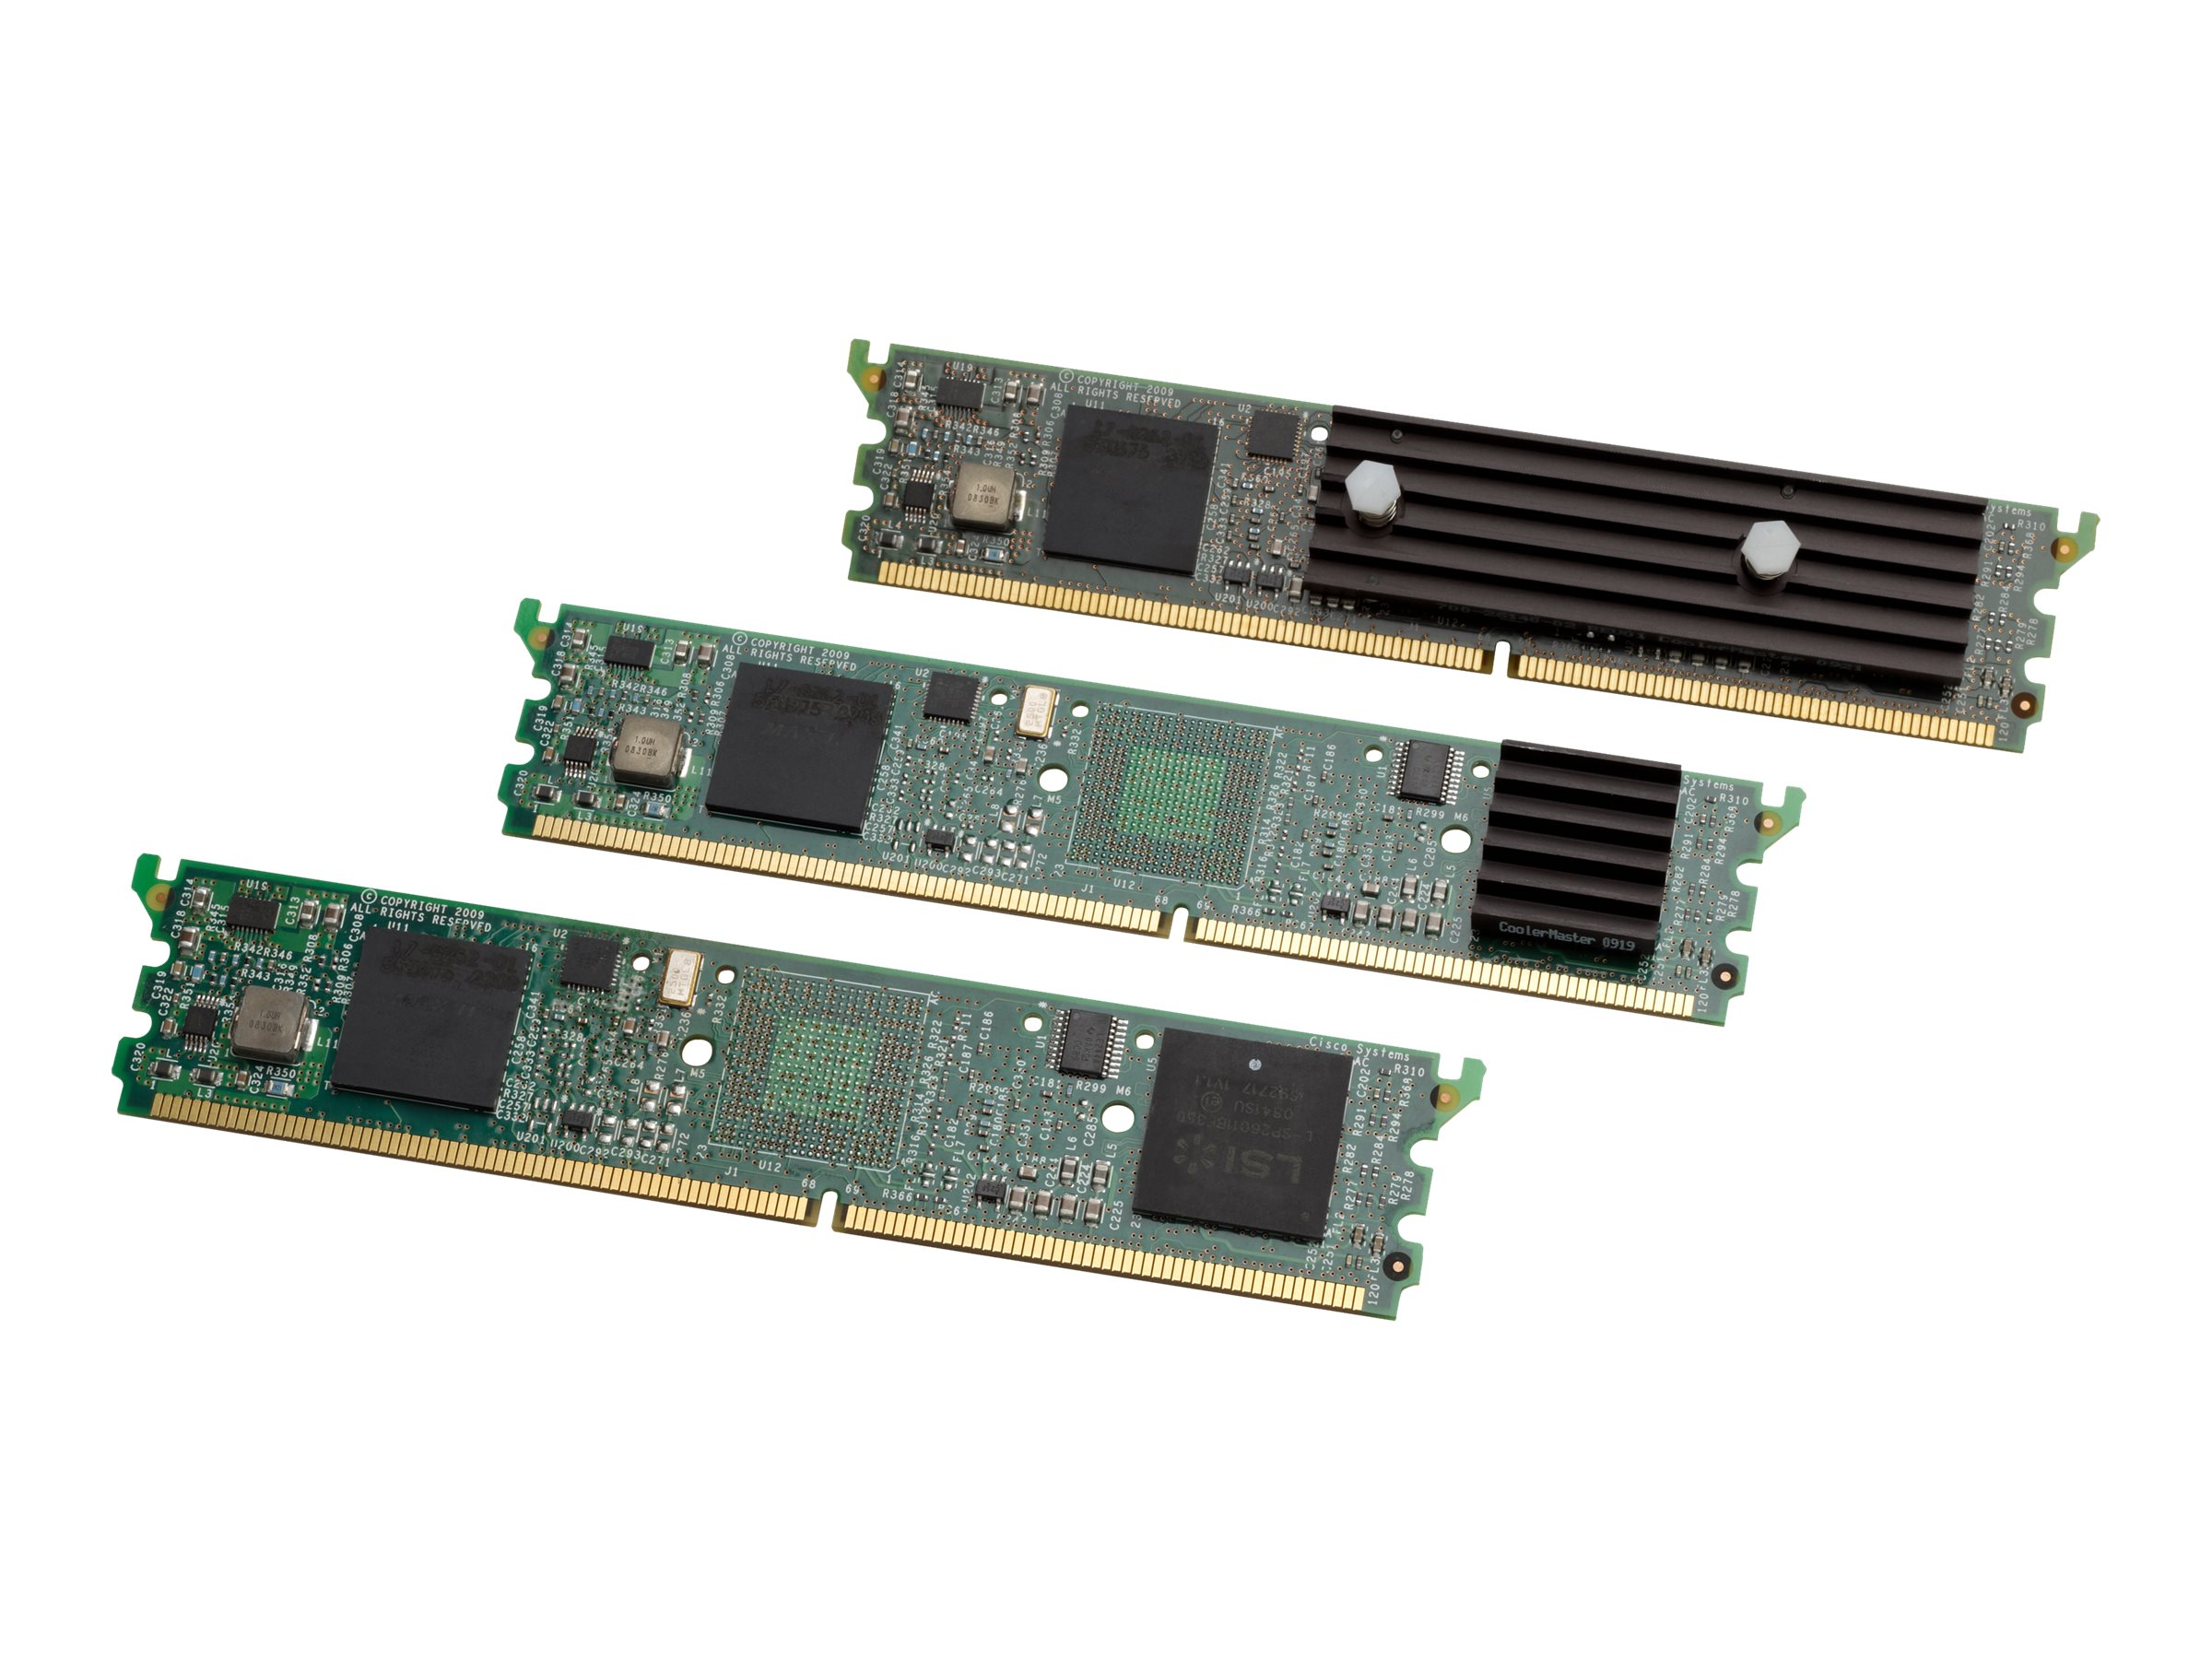 Cisco 16-Channel High-Density Packet Voice and Video Digital Signal Processor Module - voice DSP module